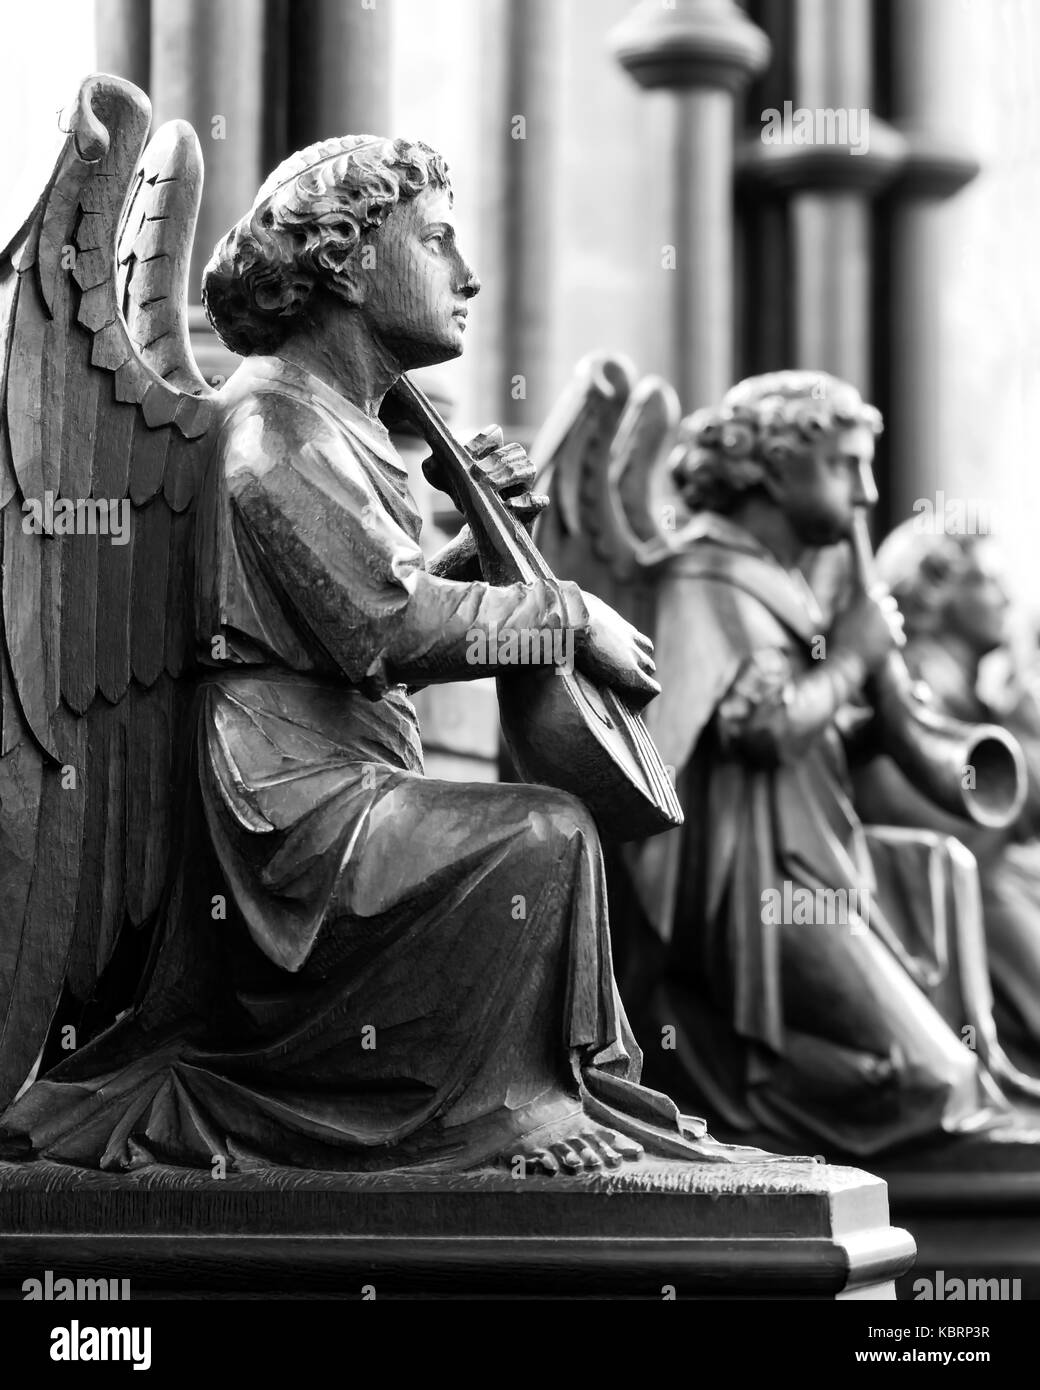 Winged Angels carved by Thompson Of Kilburn, Bridlington Priory, United Kingdom - Stock Image